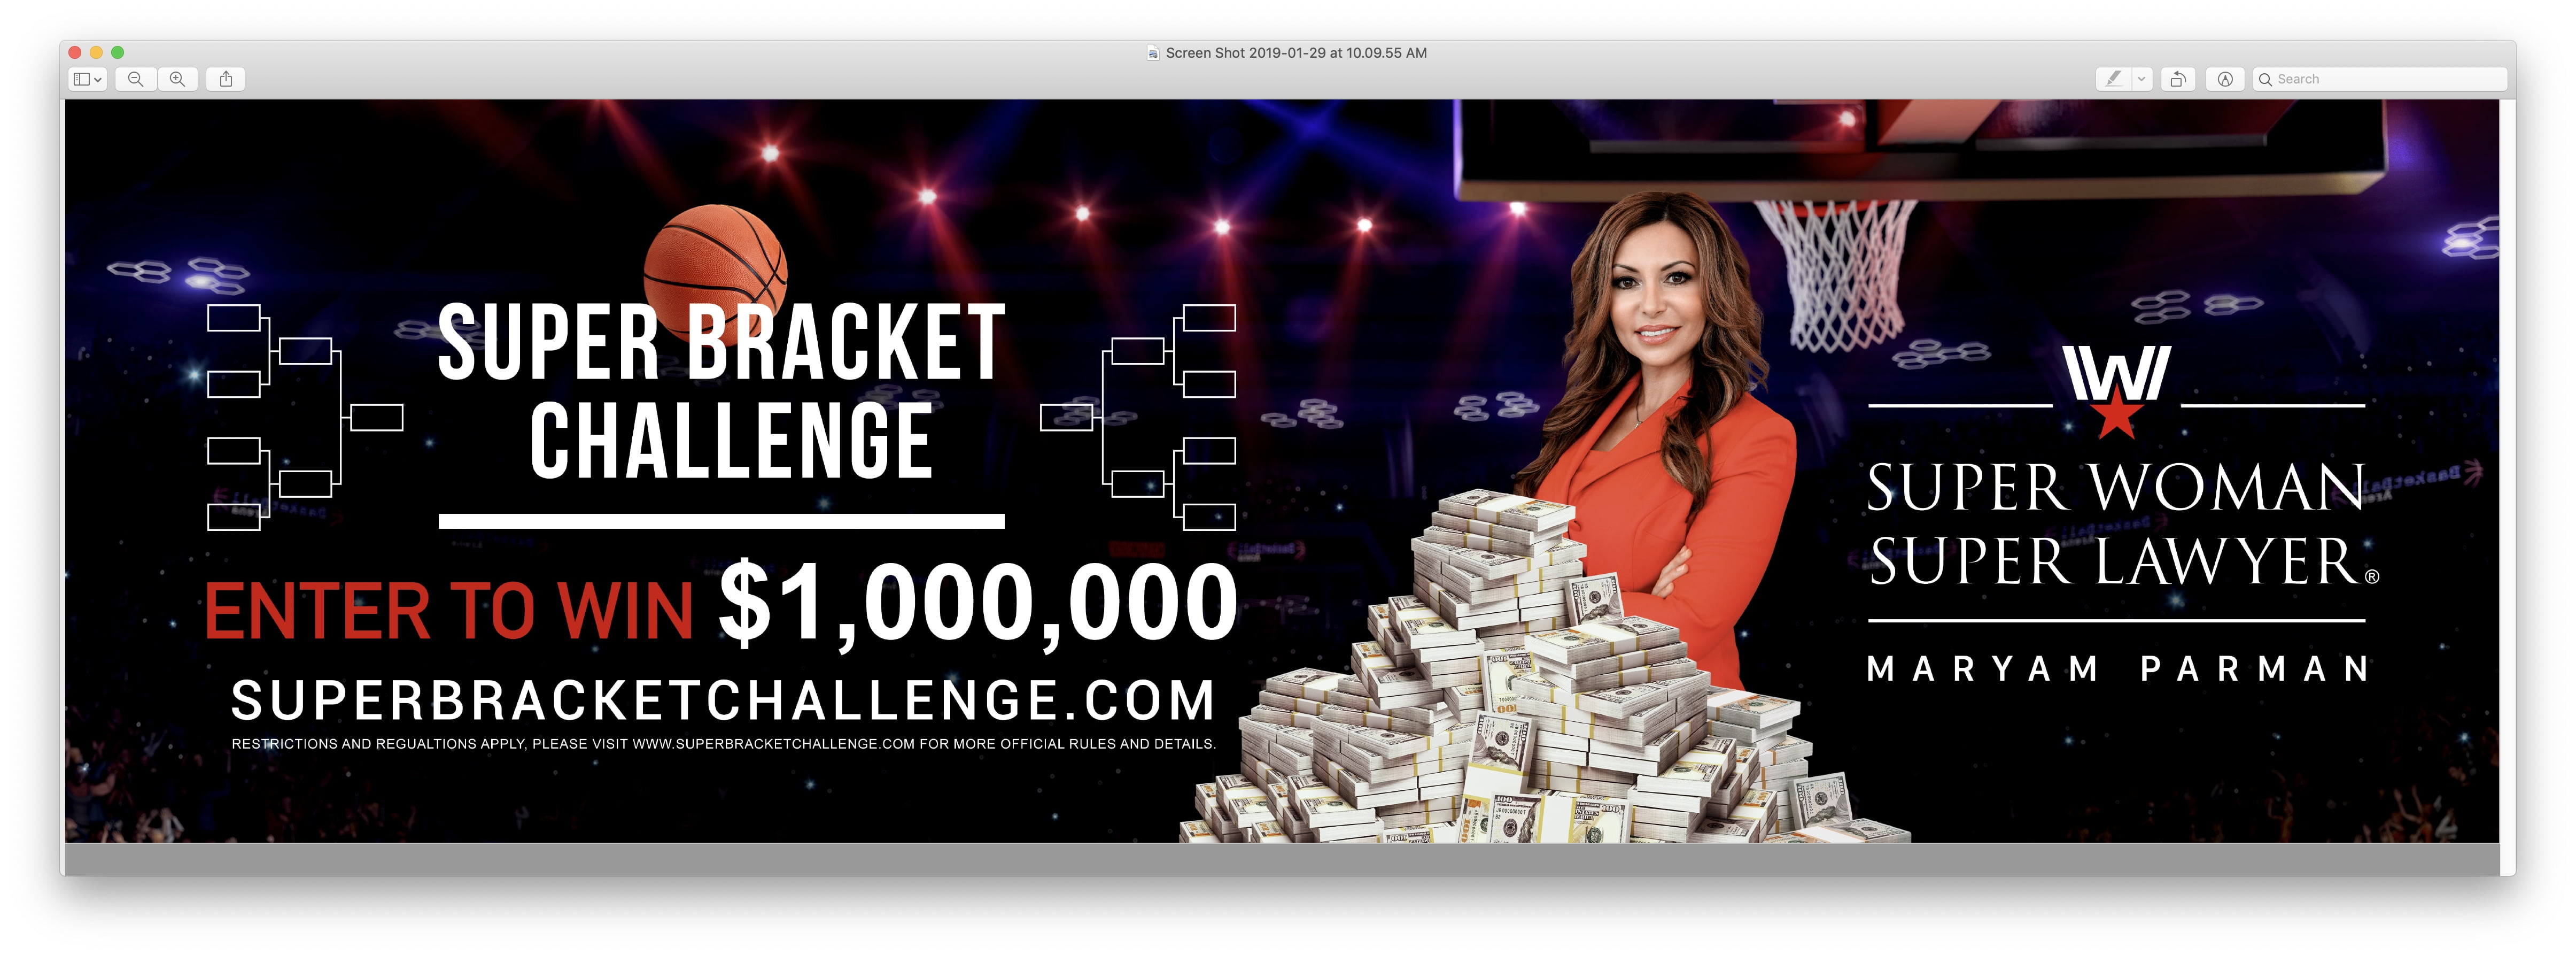 $1 Million Super Bracket Challenge Giveaway by Maryam Parman